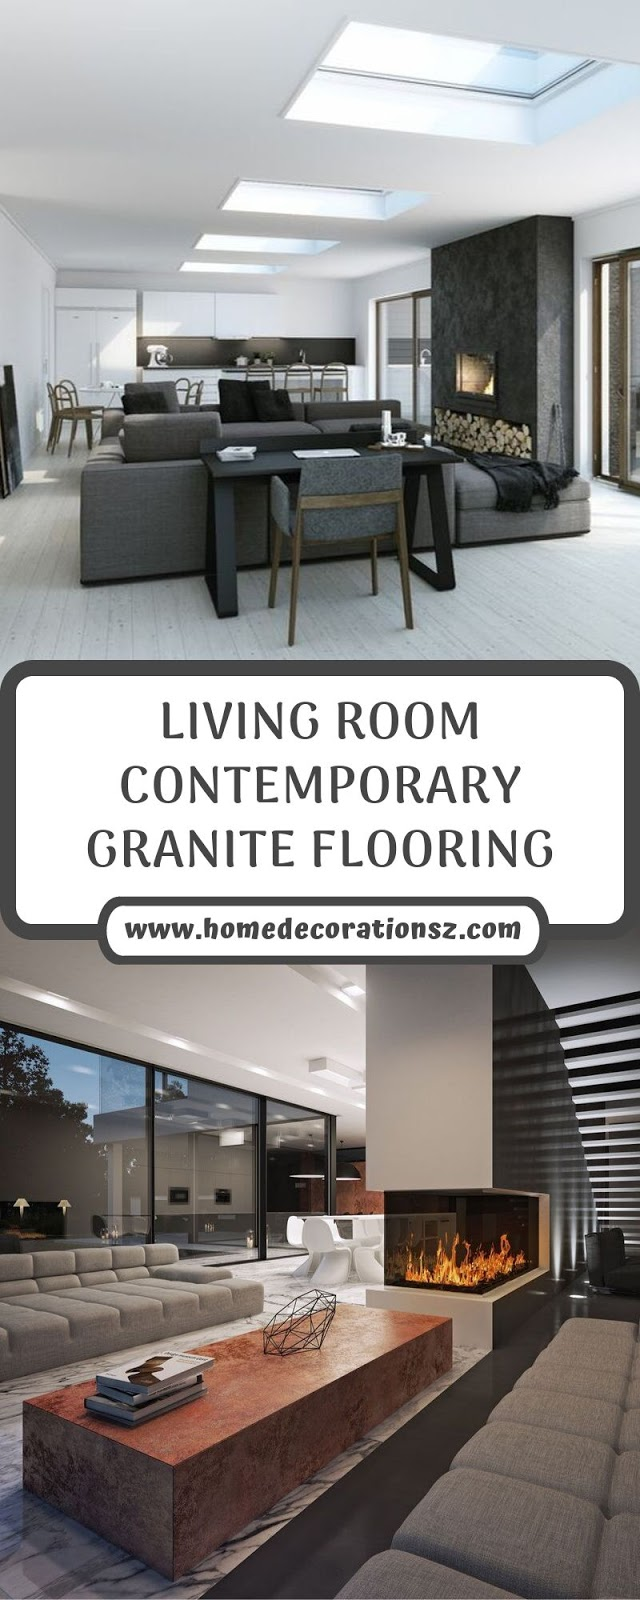 LIVING ROOM CONTEMPORARY GRANITE FLOORING